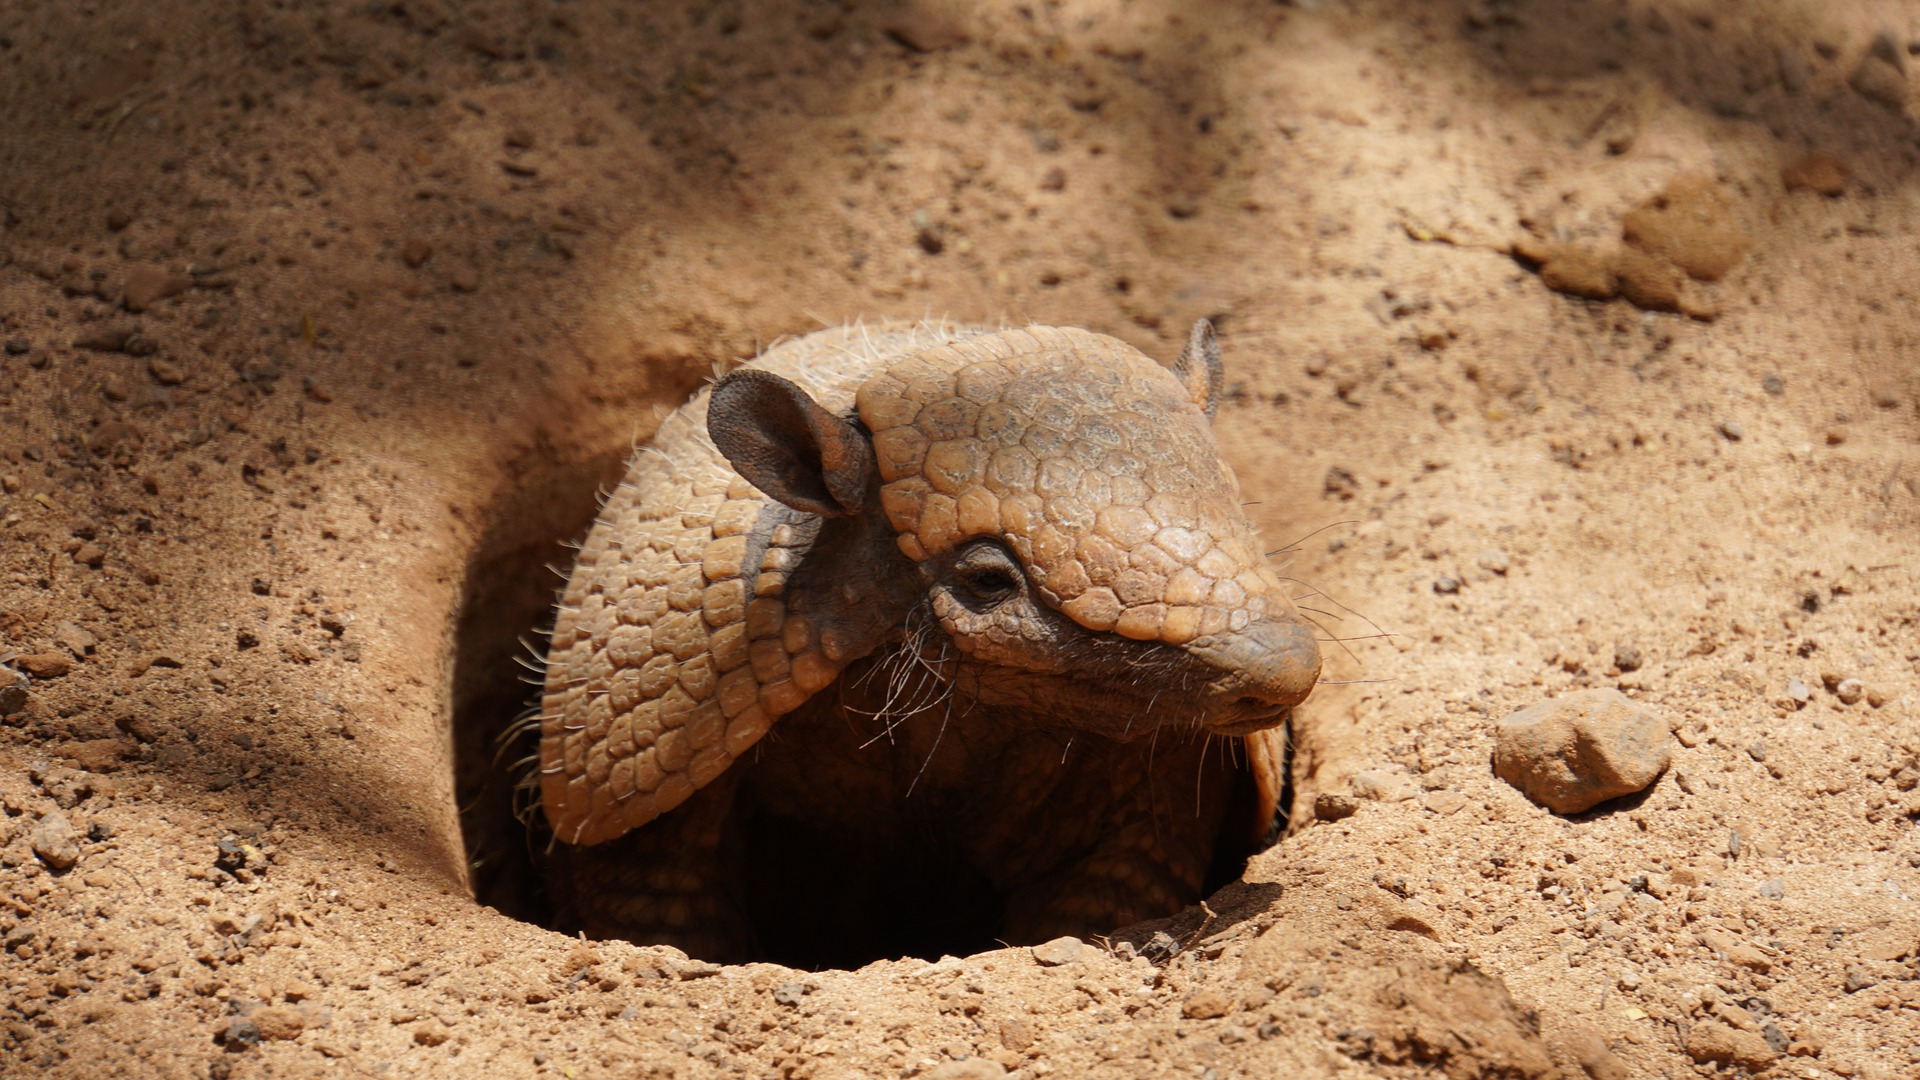 Photo of armadillo emerging from burrow